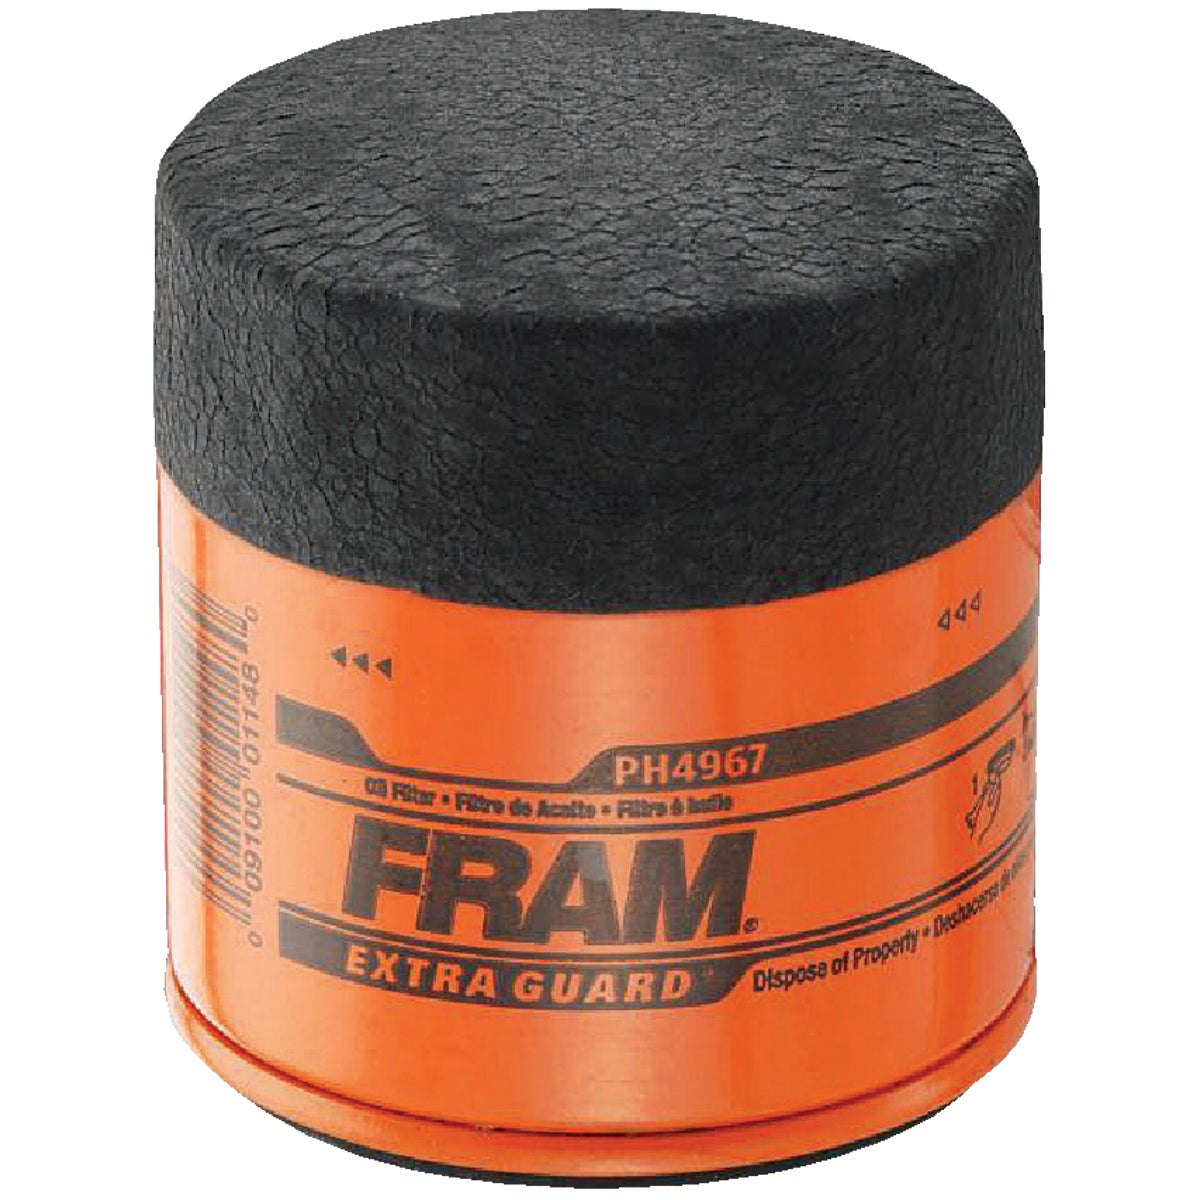 OIL FILTER - PH4967 by Fram Group